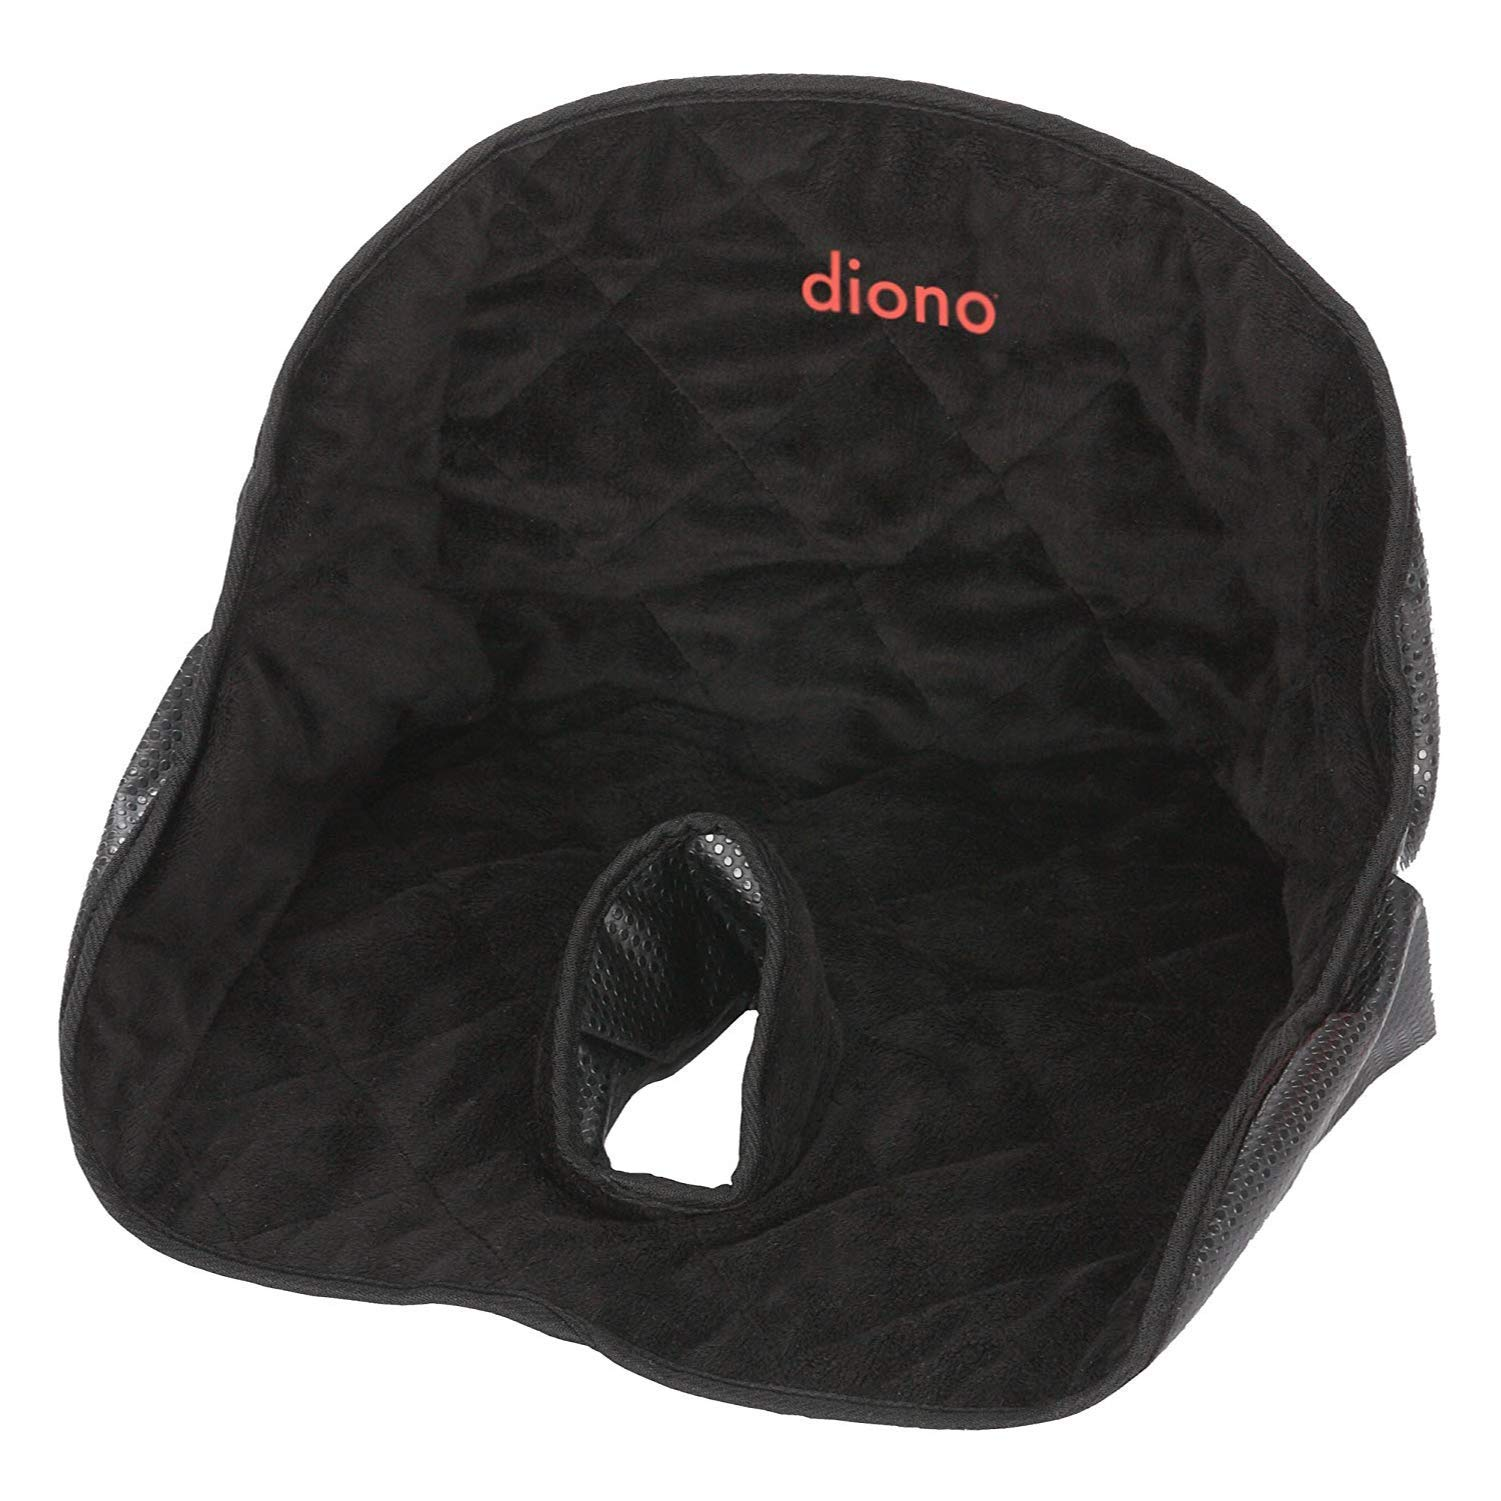 Diono Dry Seat, Car Seat Protector to Help Keep Your Seats Clean and Dry, Black